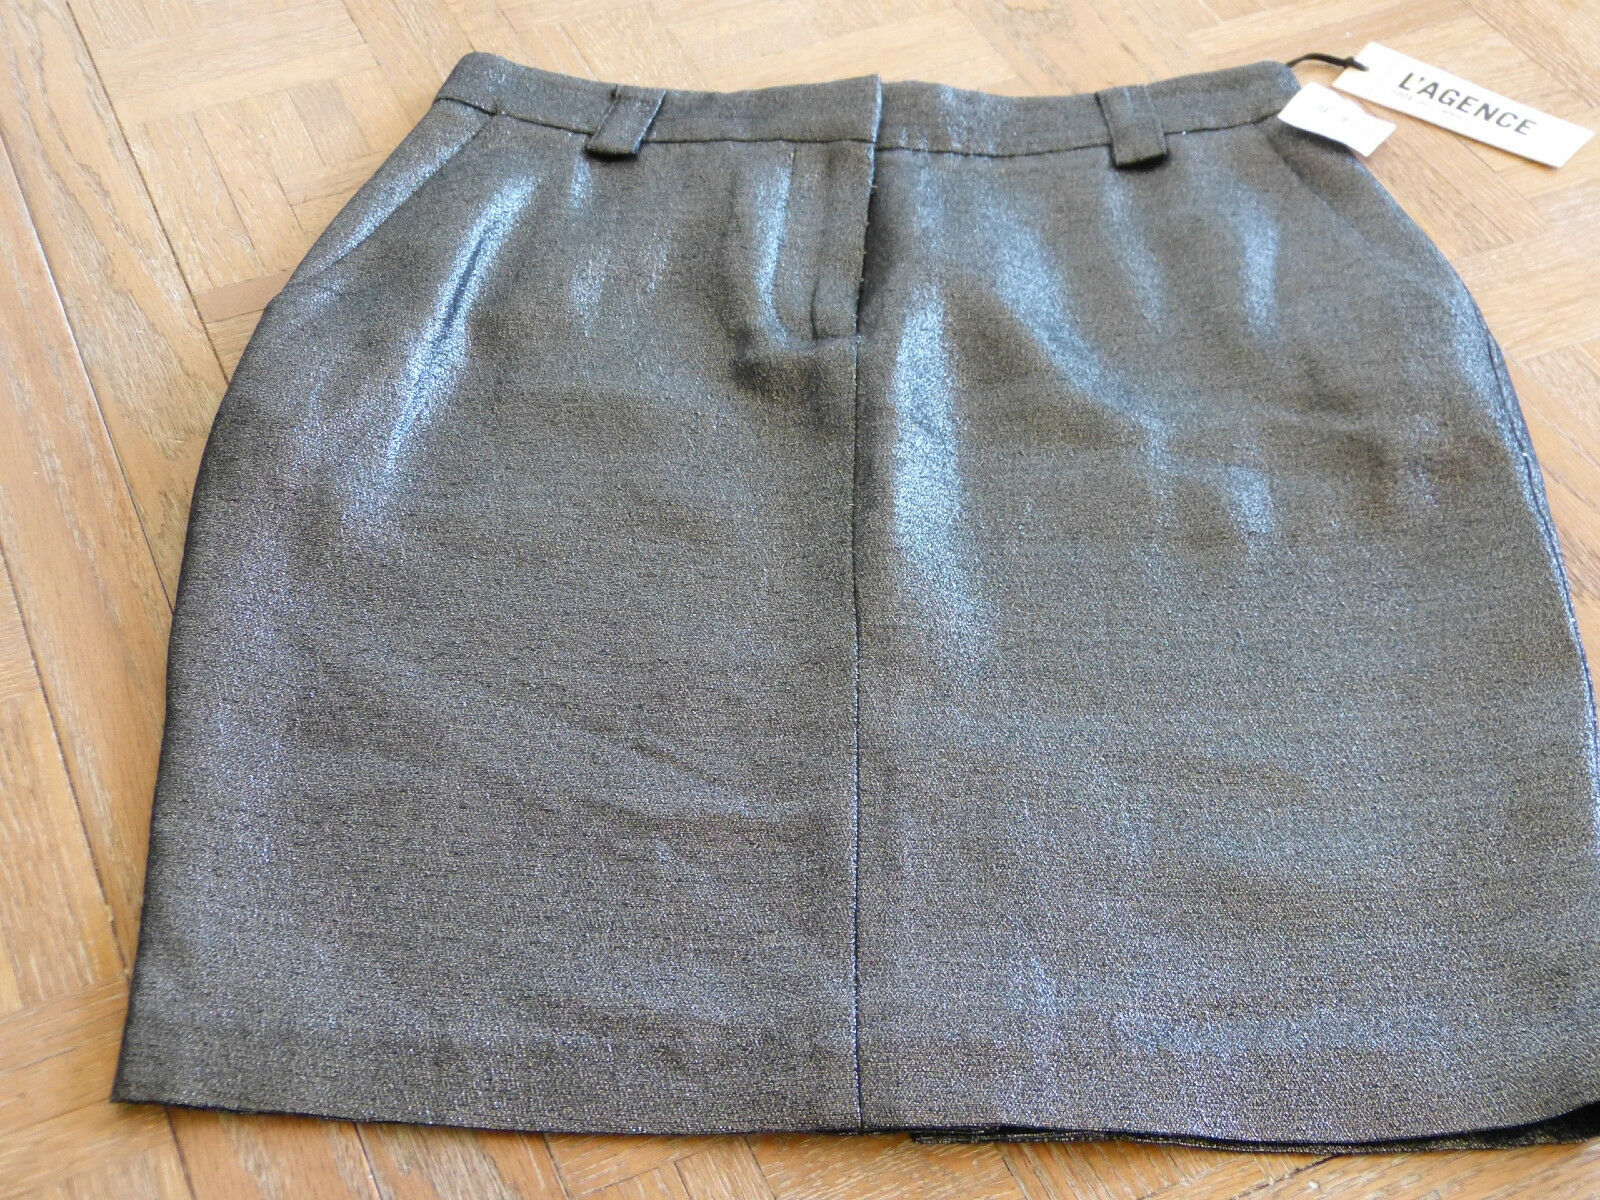 NWT L'Agence Couture Women's Size S Metallic Pewter Cotton Pencil Skirt  312 MS